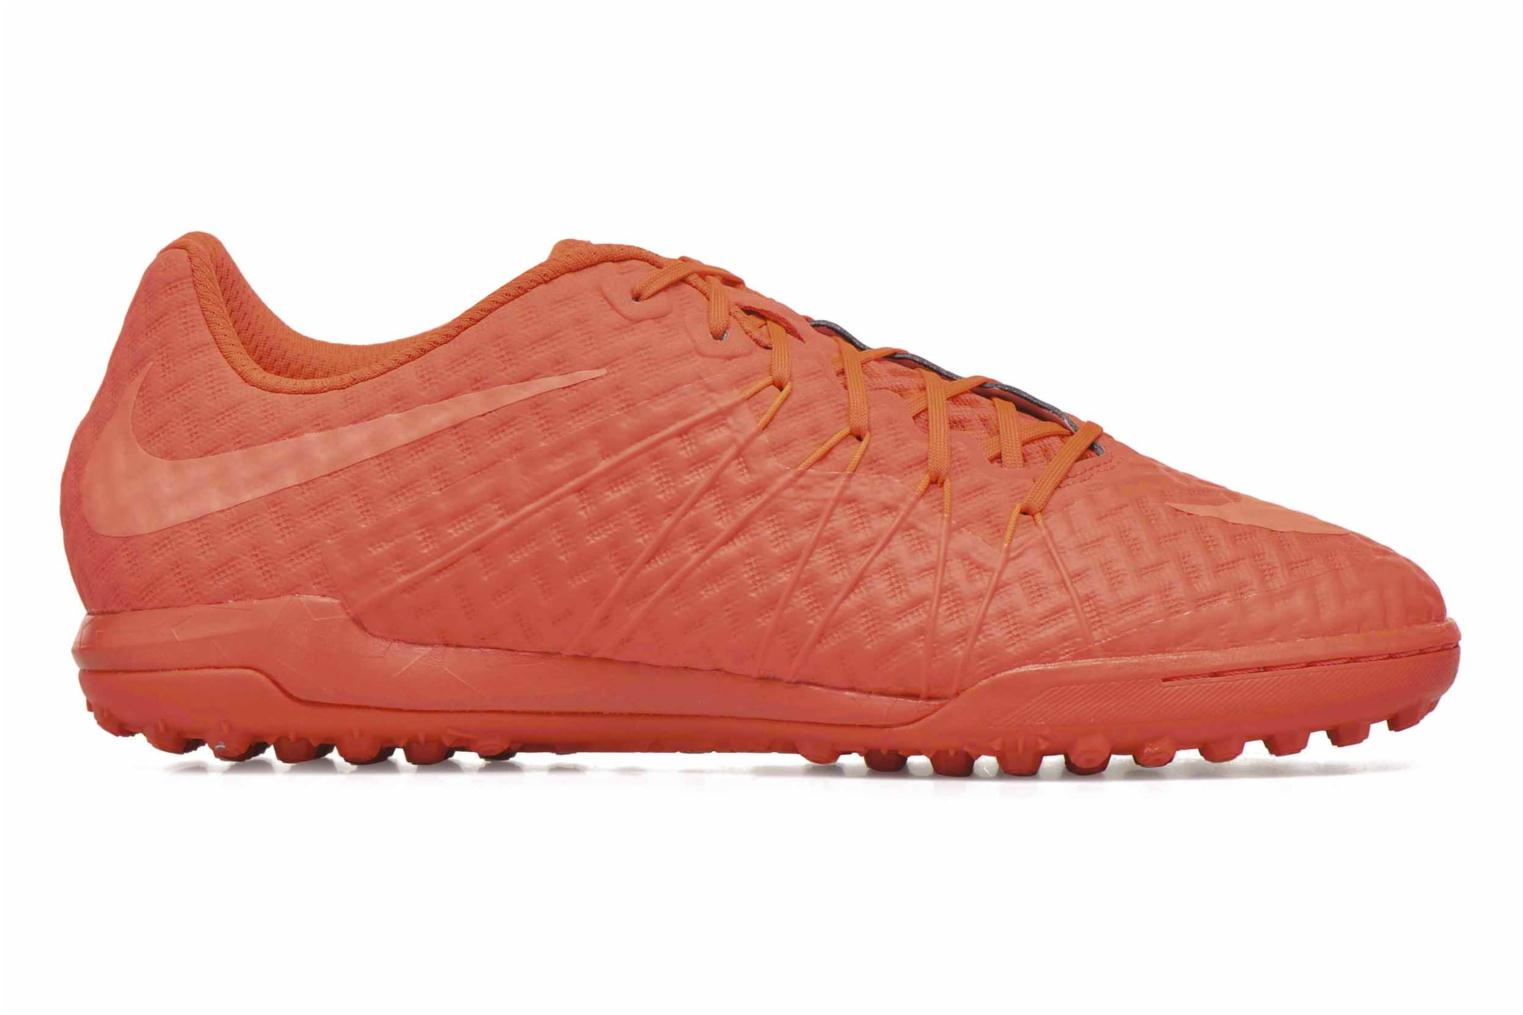 Hypervenomx finale tf Bright Crimson/Hyper Orange